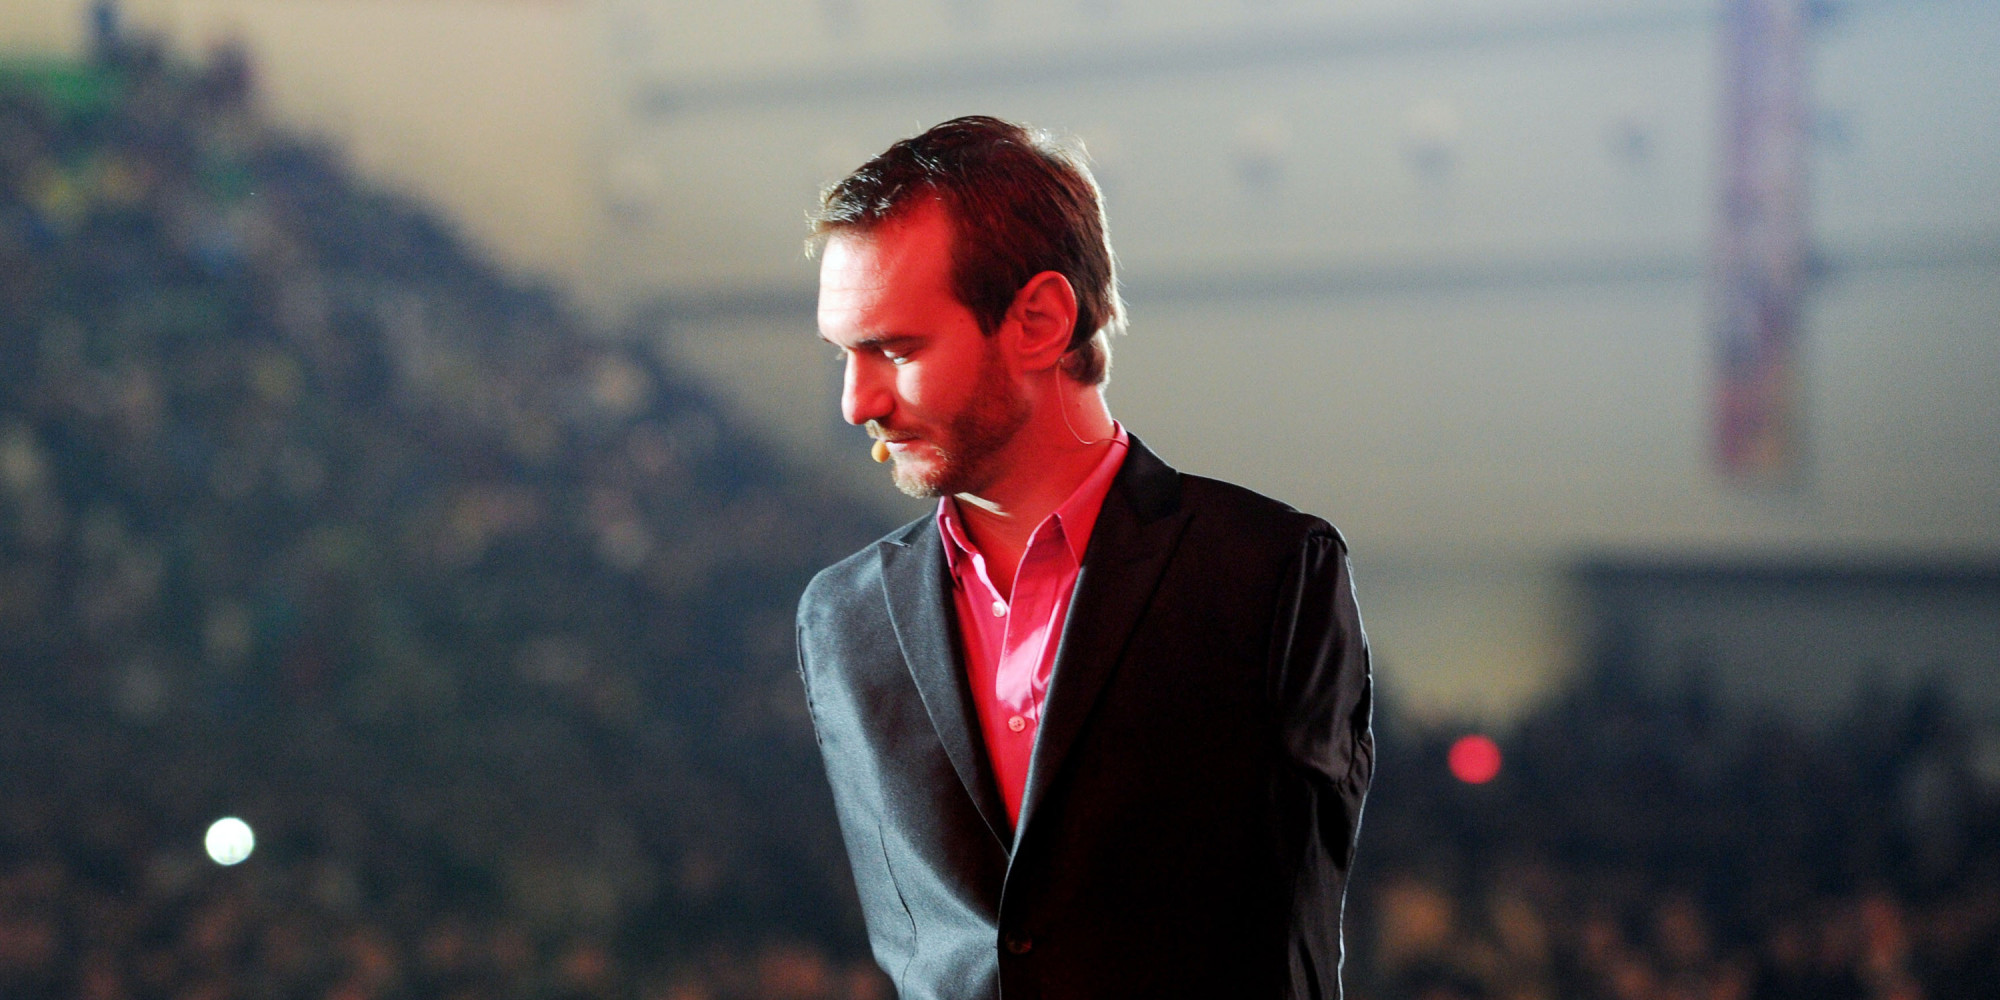 christian nick vujicic offers powerful testimony on standing  christian nick vujicic offers powerful testimony on standing strong against bullying huffpost